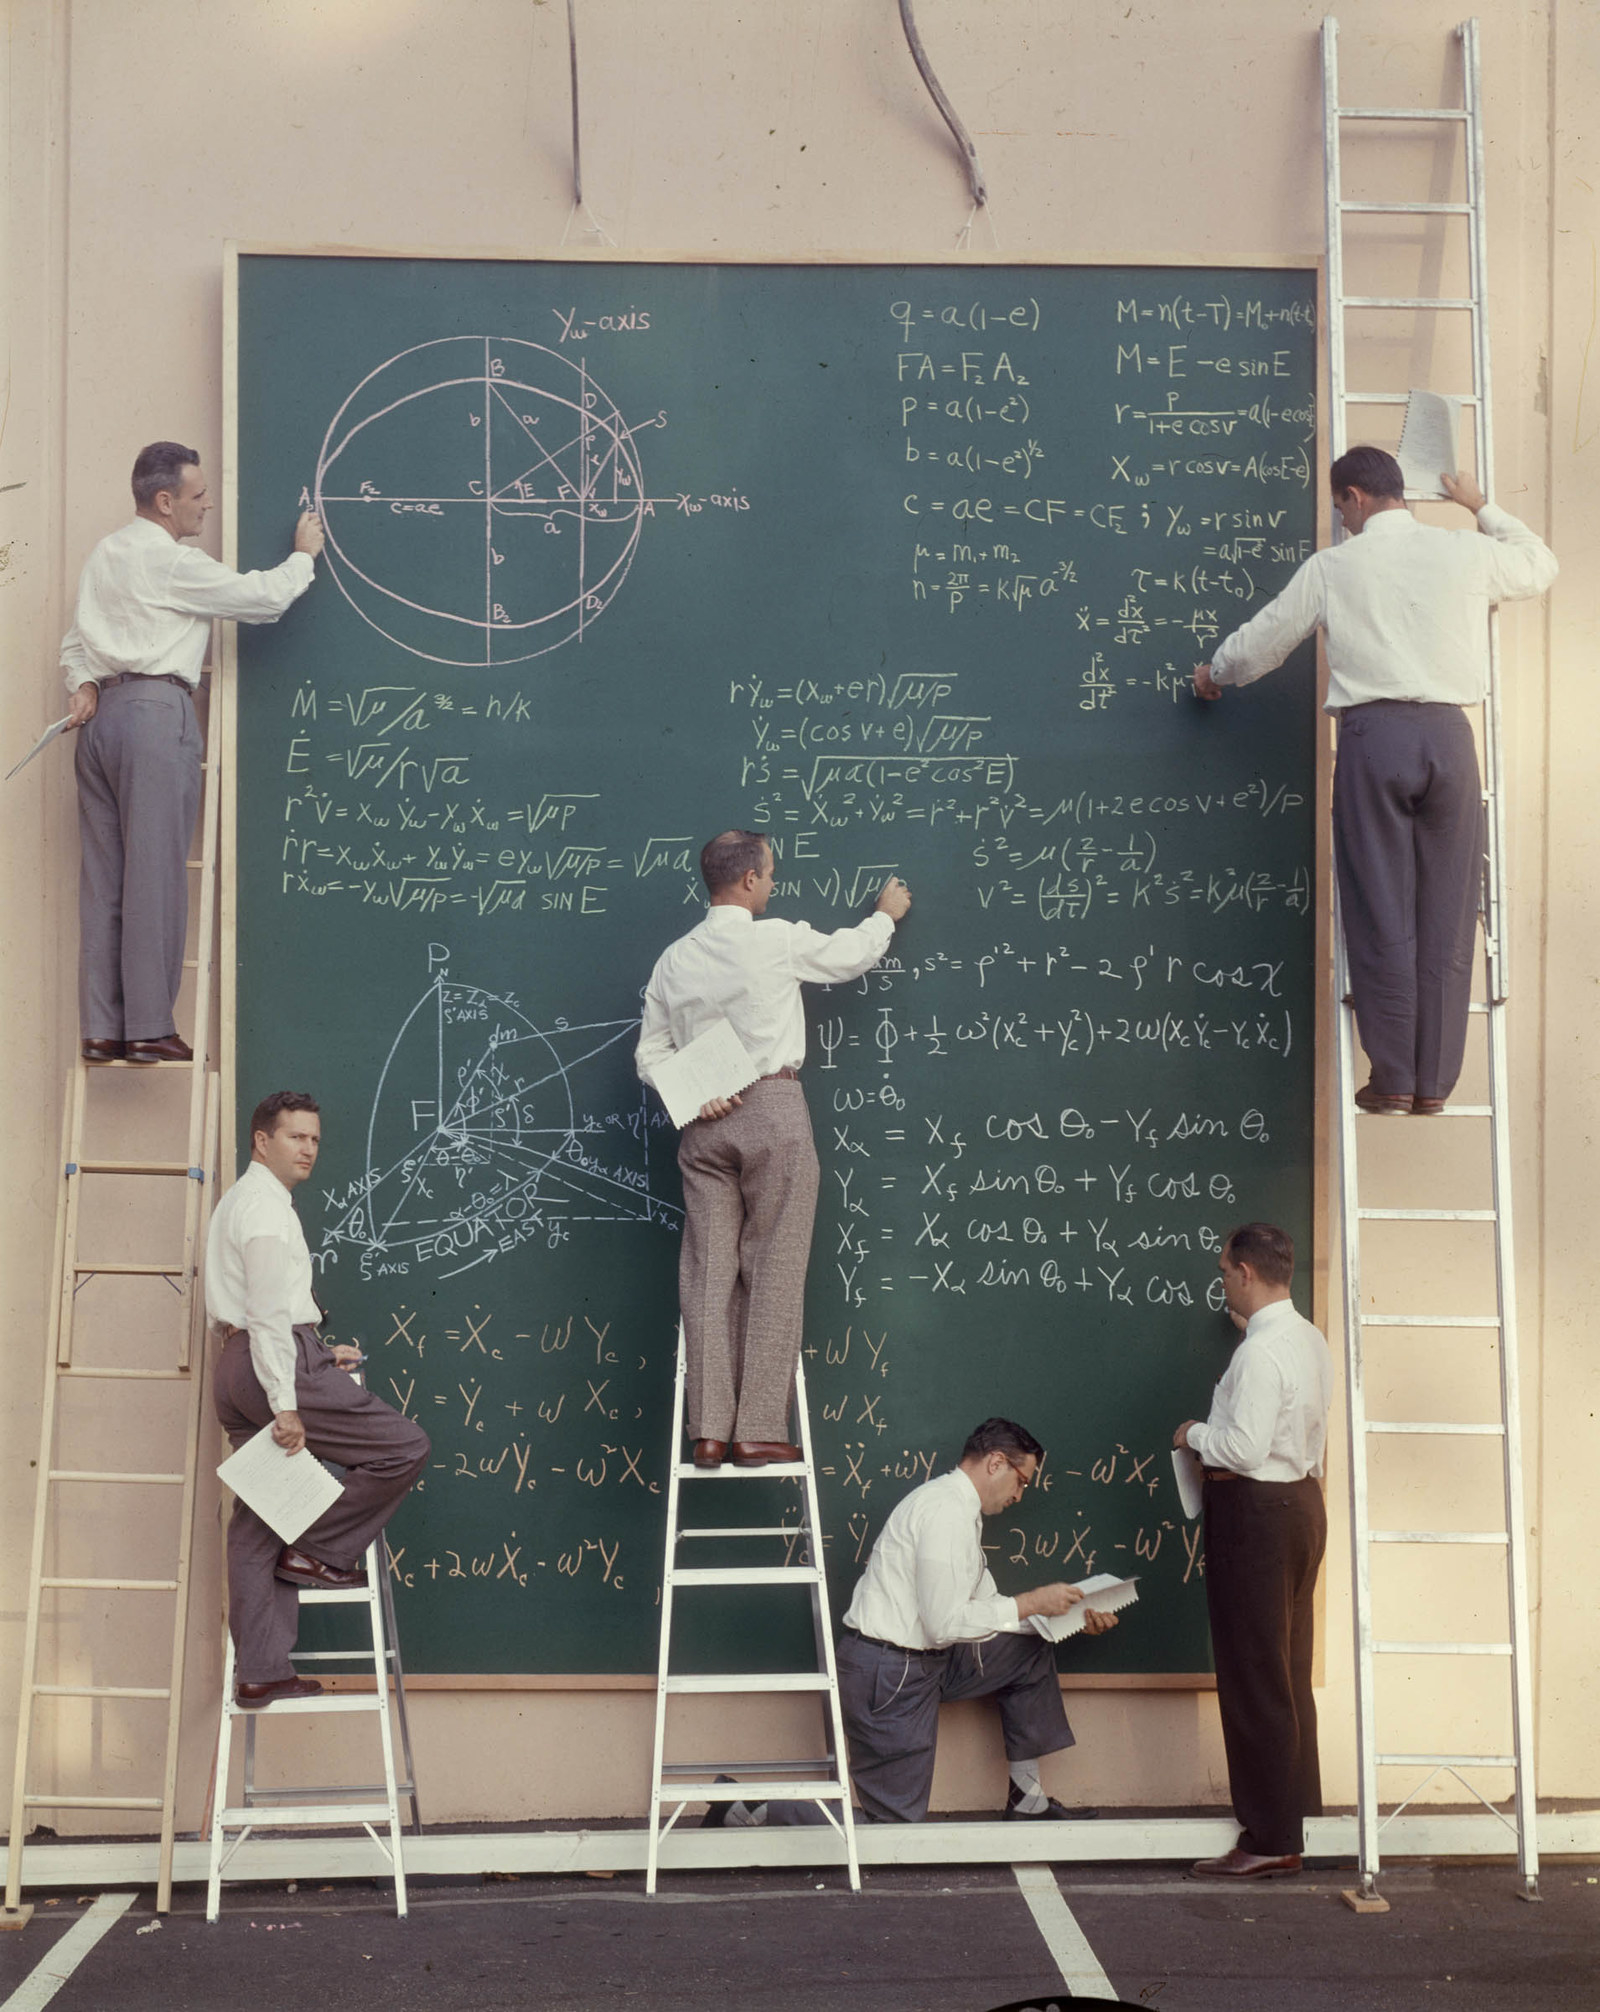 1957 Six unidentified scientists use ladders and a large chalkboard to work out equations for satellite orbits at Systems Labs, California.